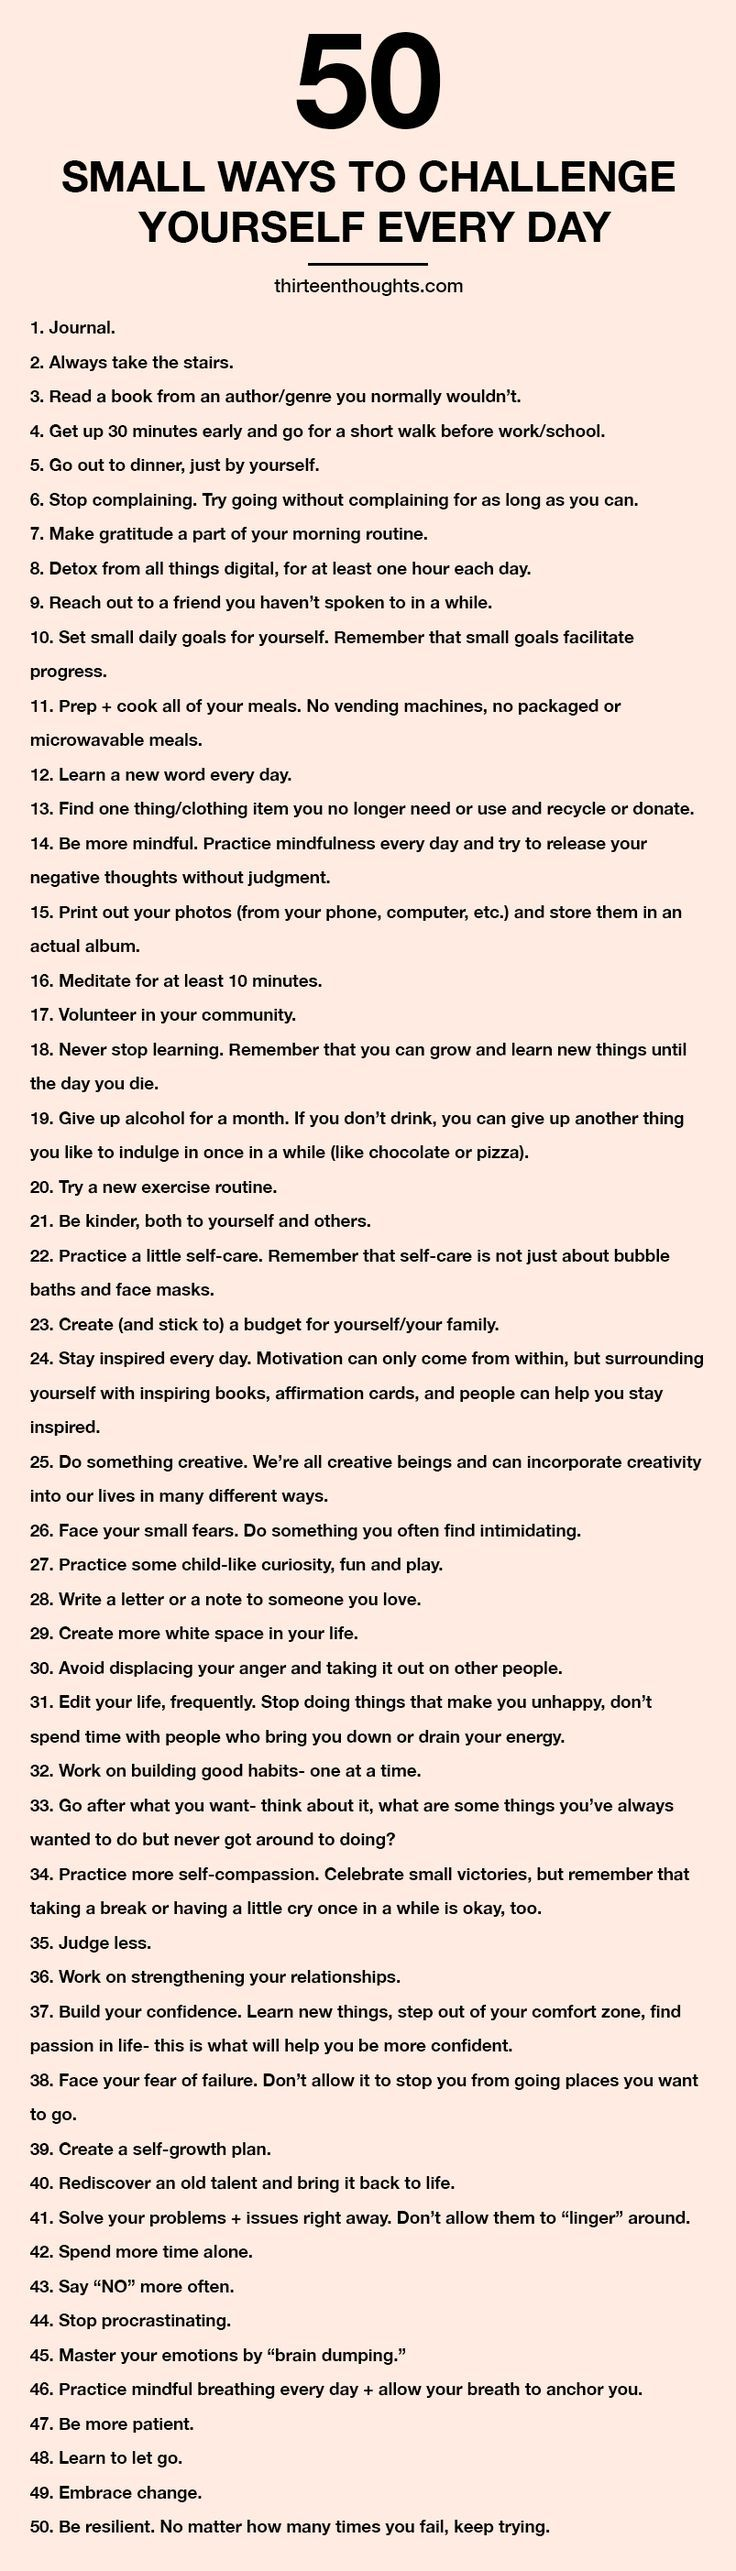 50 Small Ways to Challenge Yourself Every Day (+ free printable)